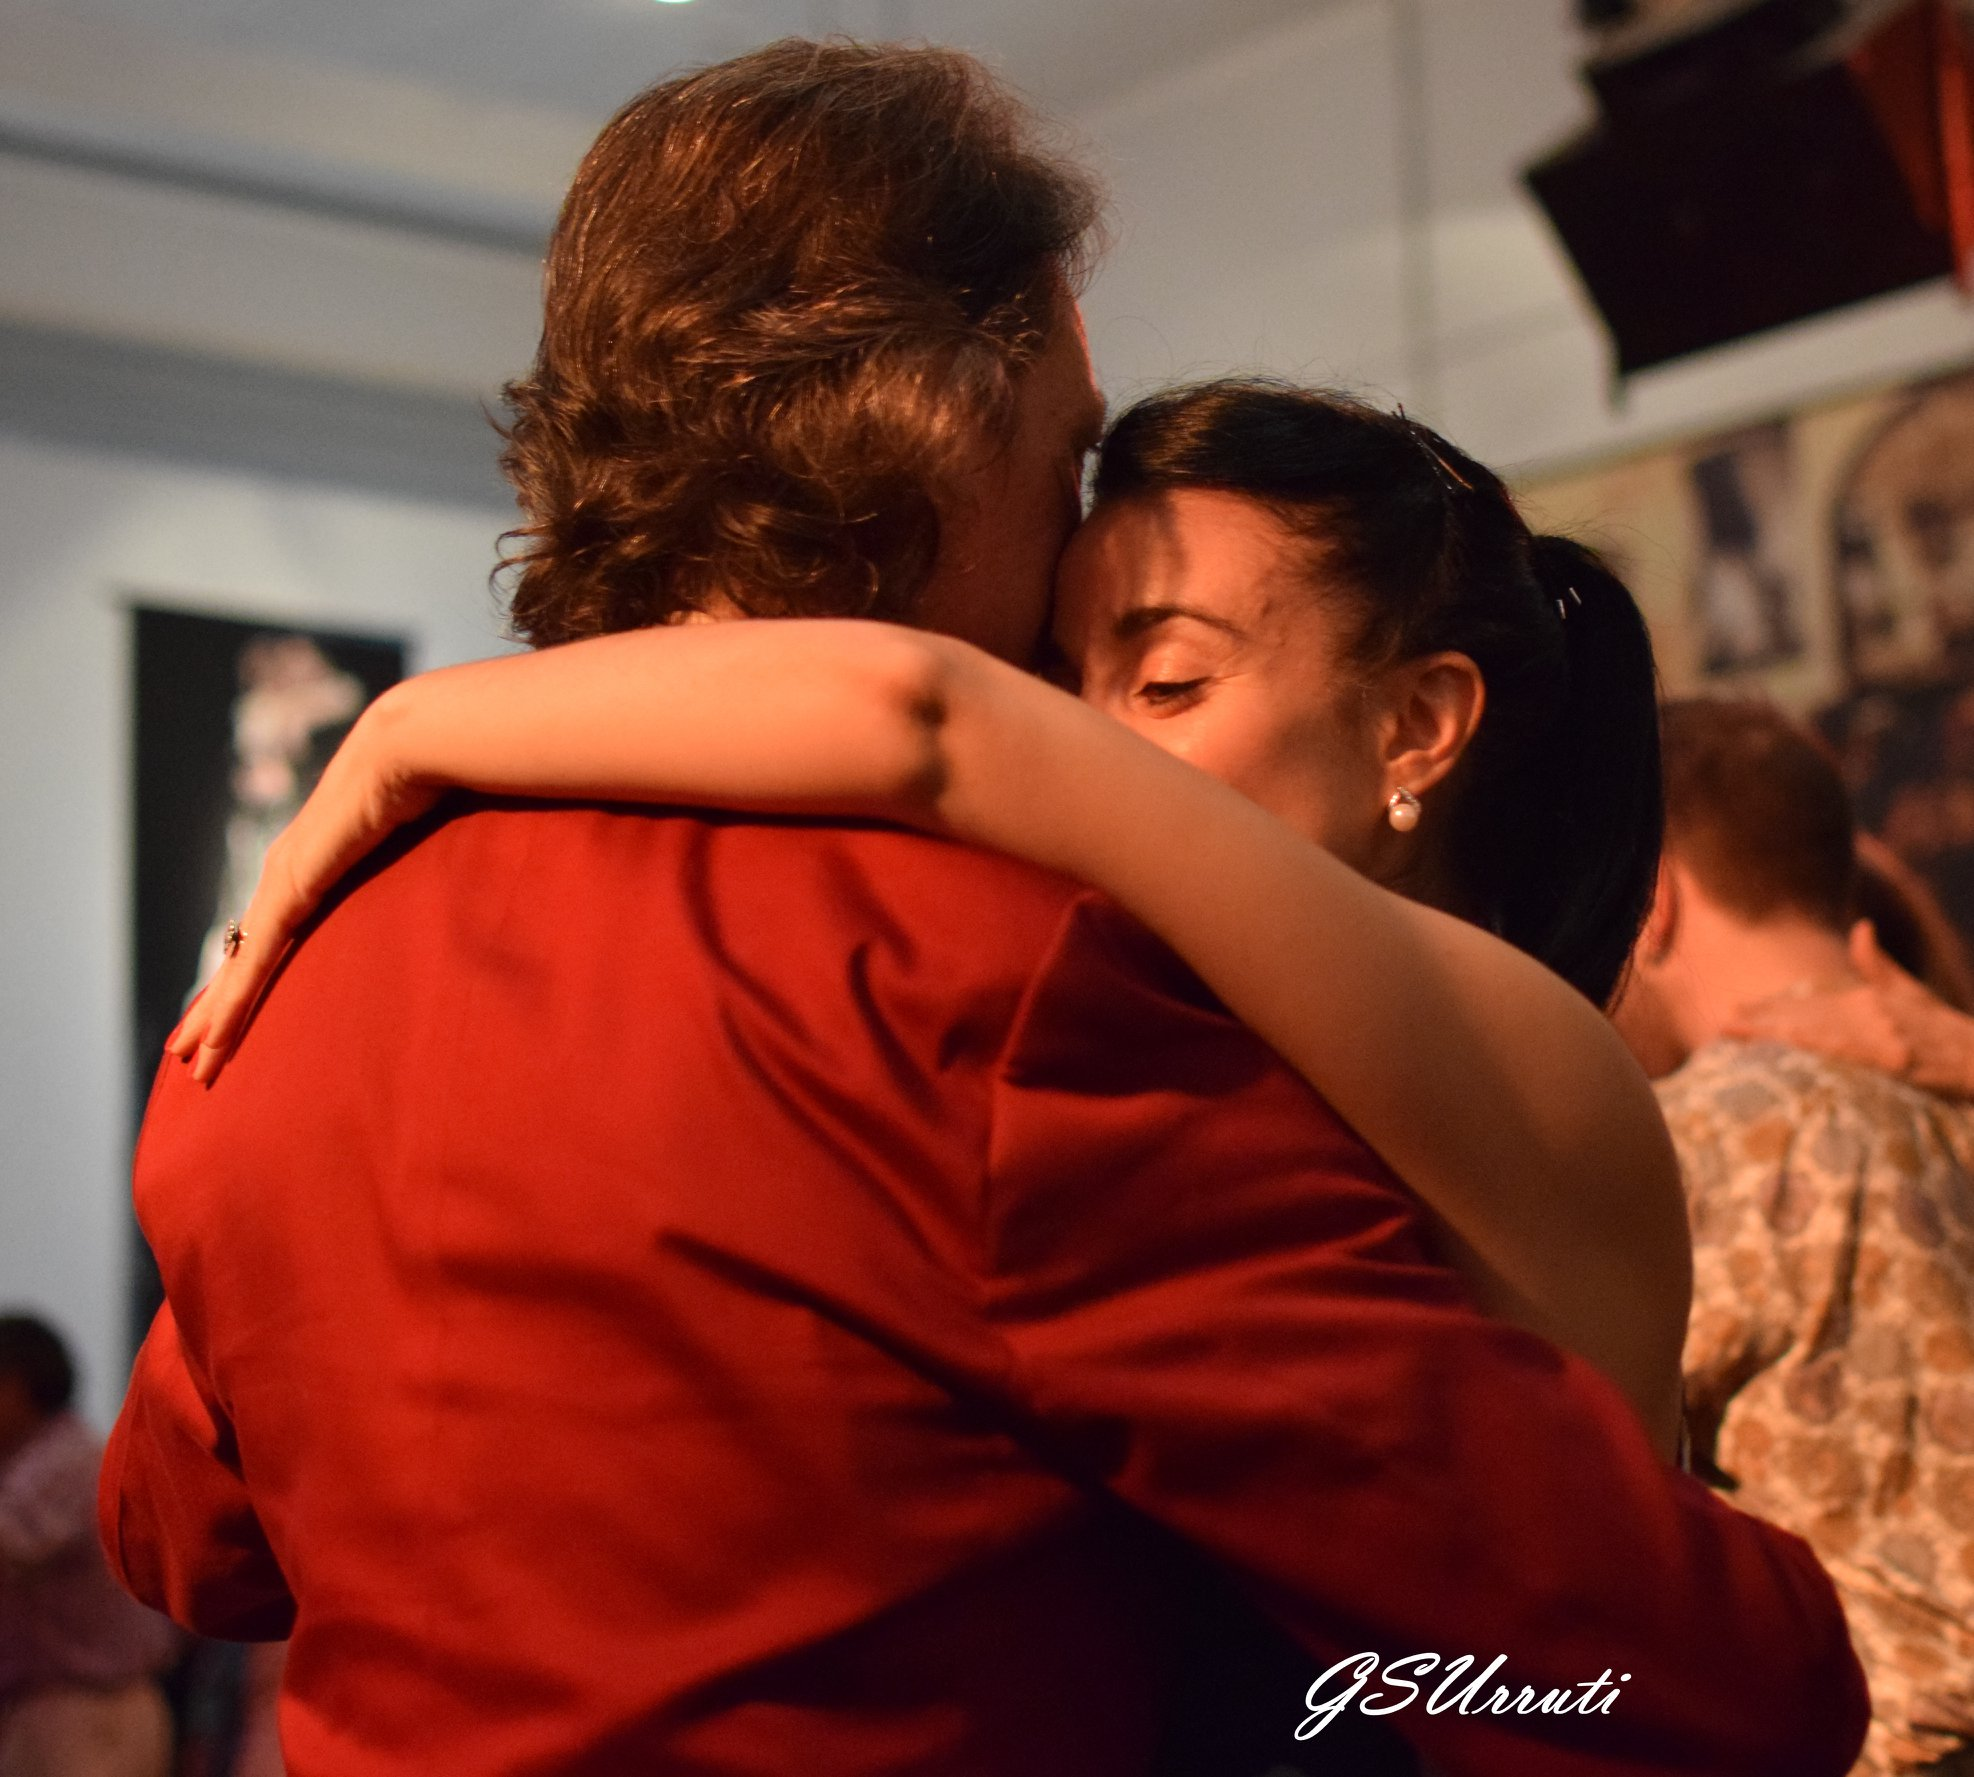 Dancing with Lola at milonga Parakultural, Salon Canning, Buenos Aires.